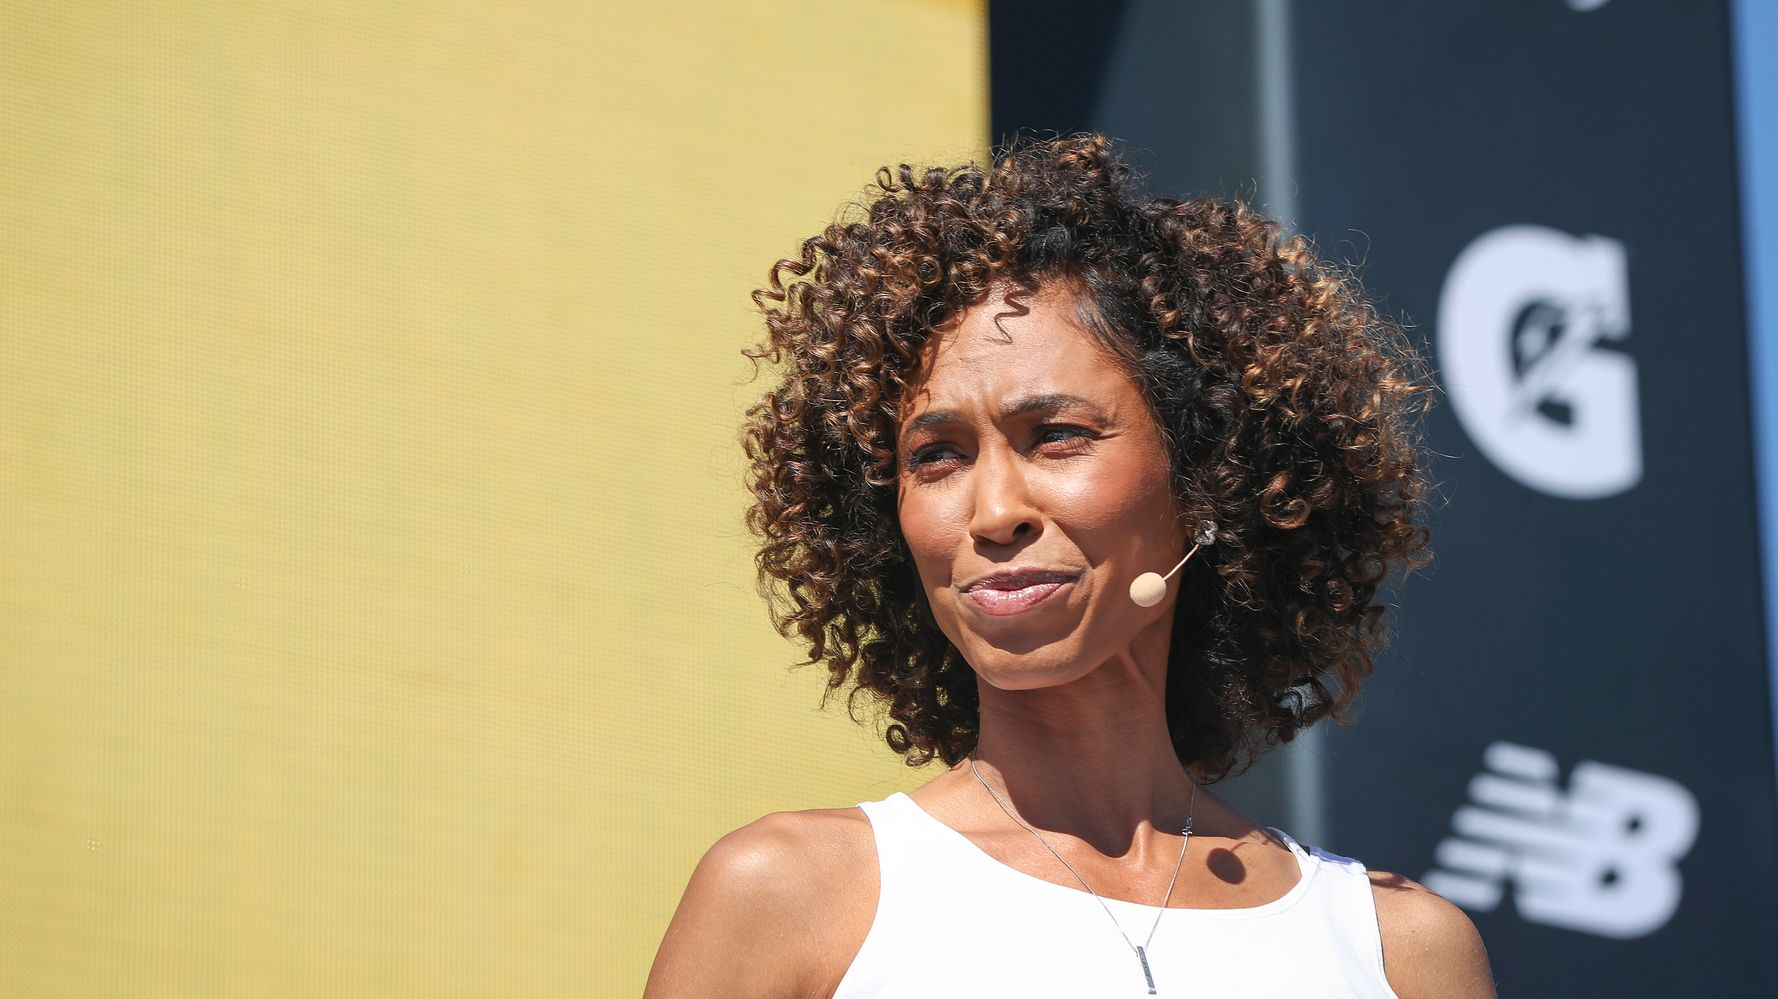 ESPN Anchor Sage Steele Calls Vaccine Mandate 'Sick' And 'Scary'